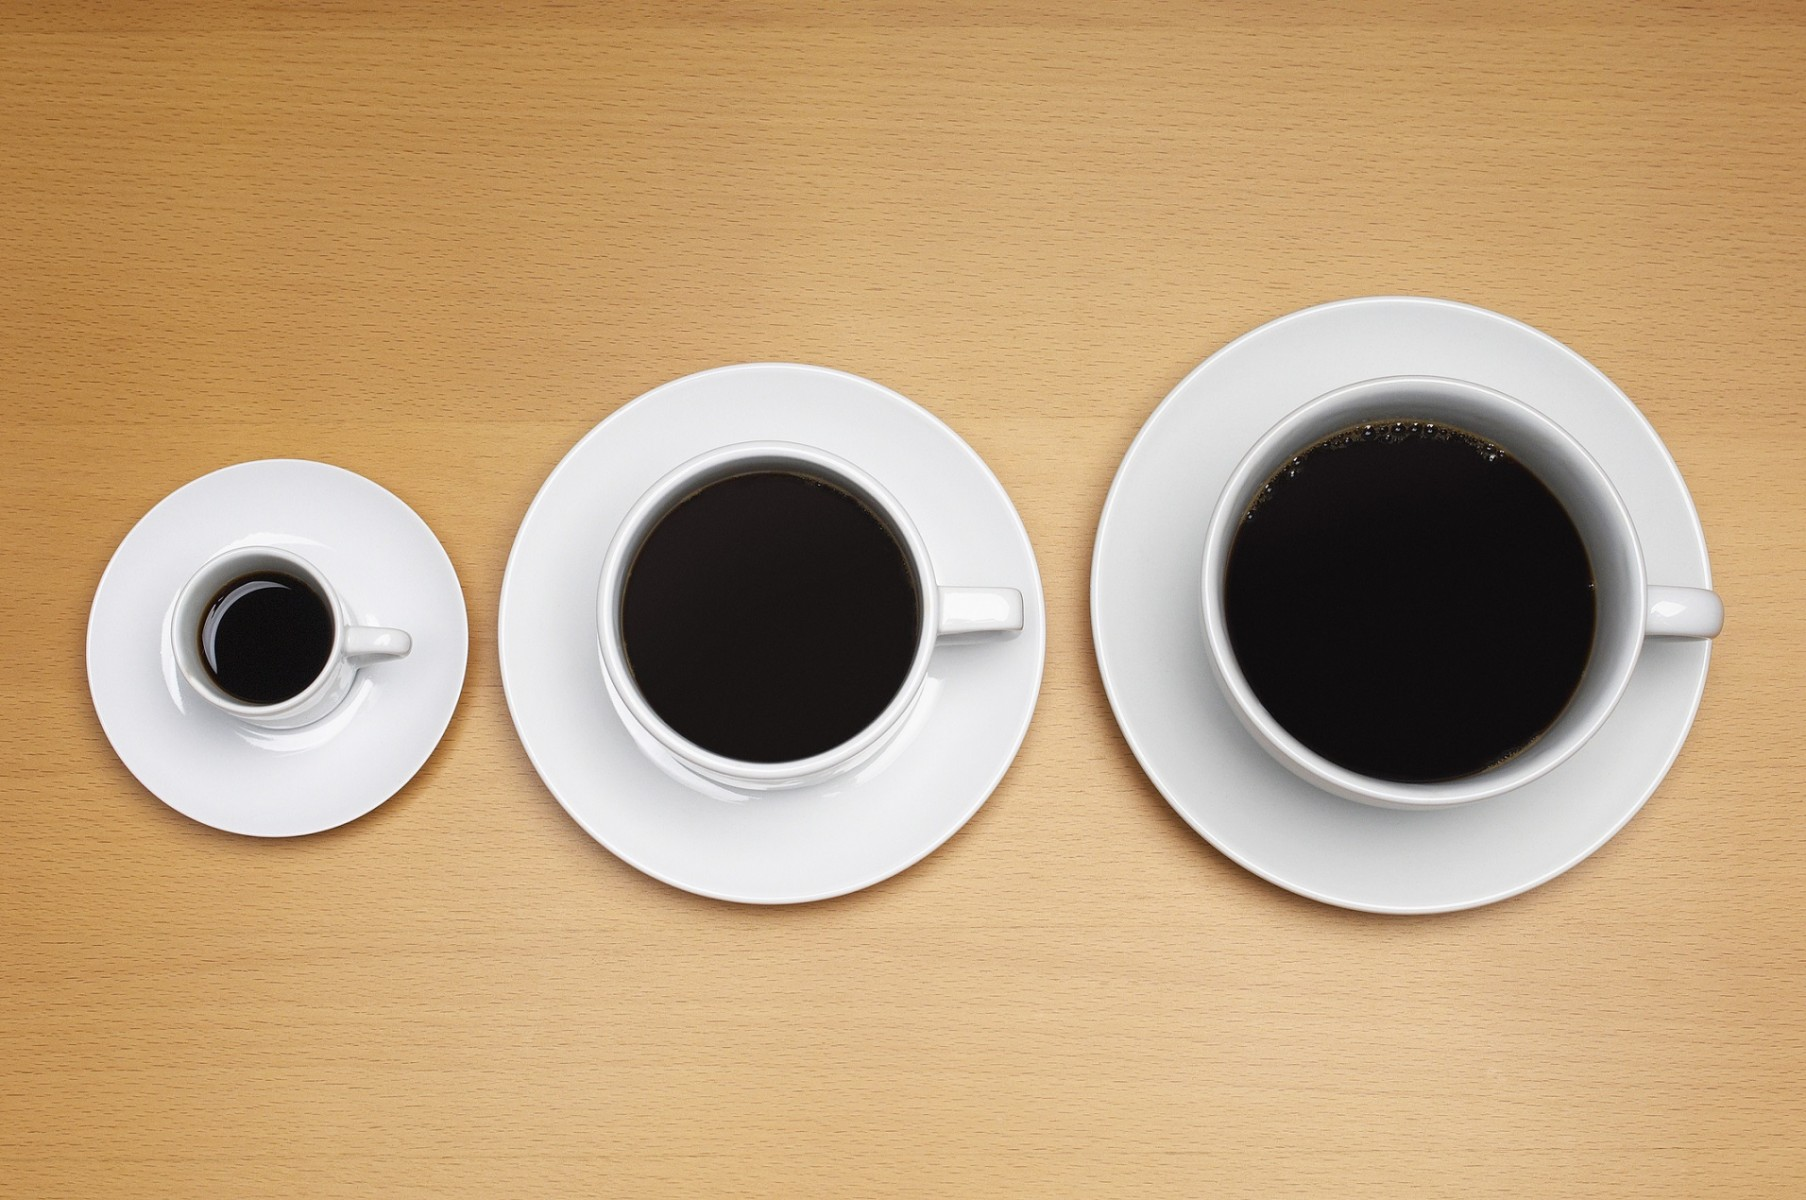 Are you going to upgrade to the larger cup of coffee?